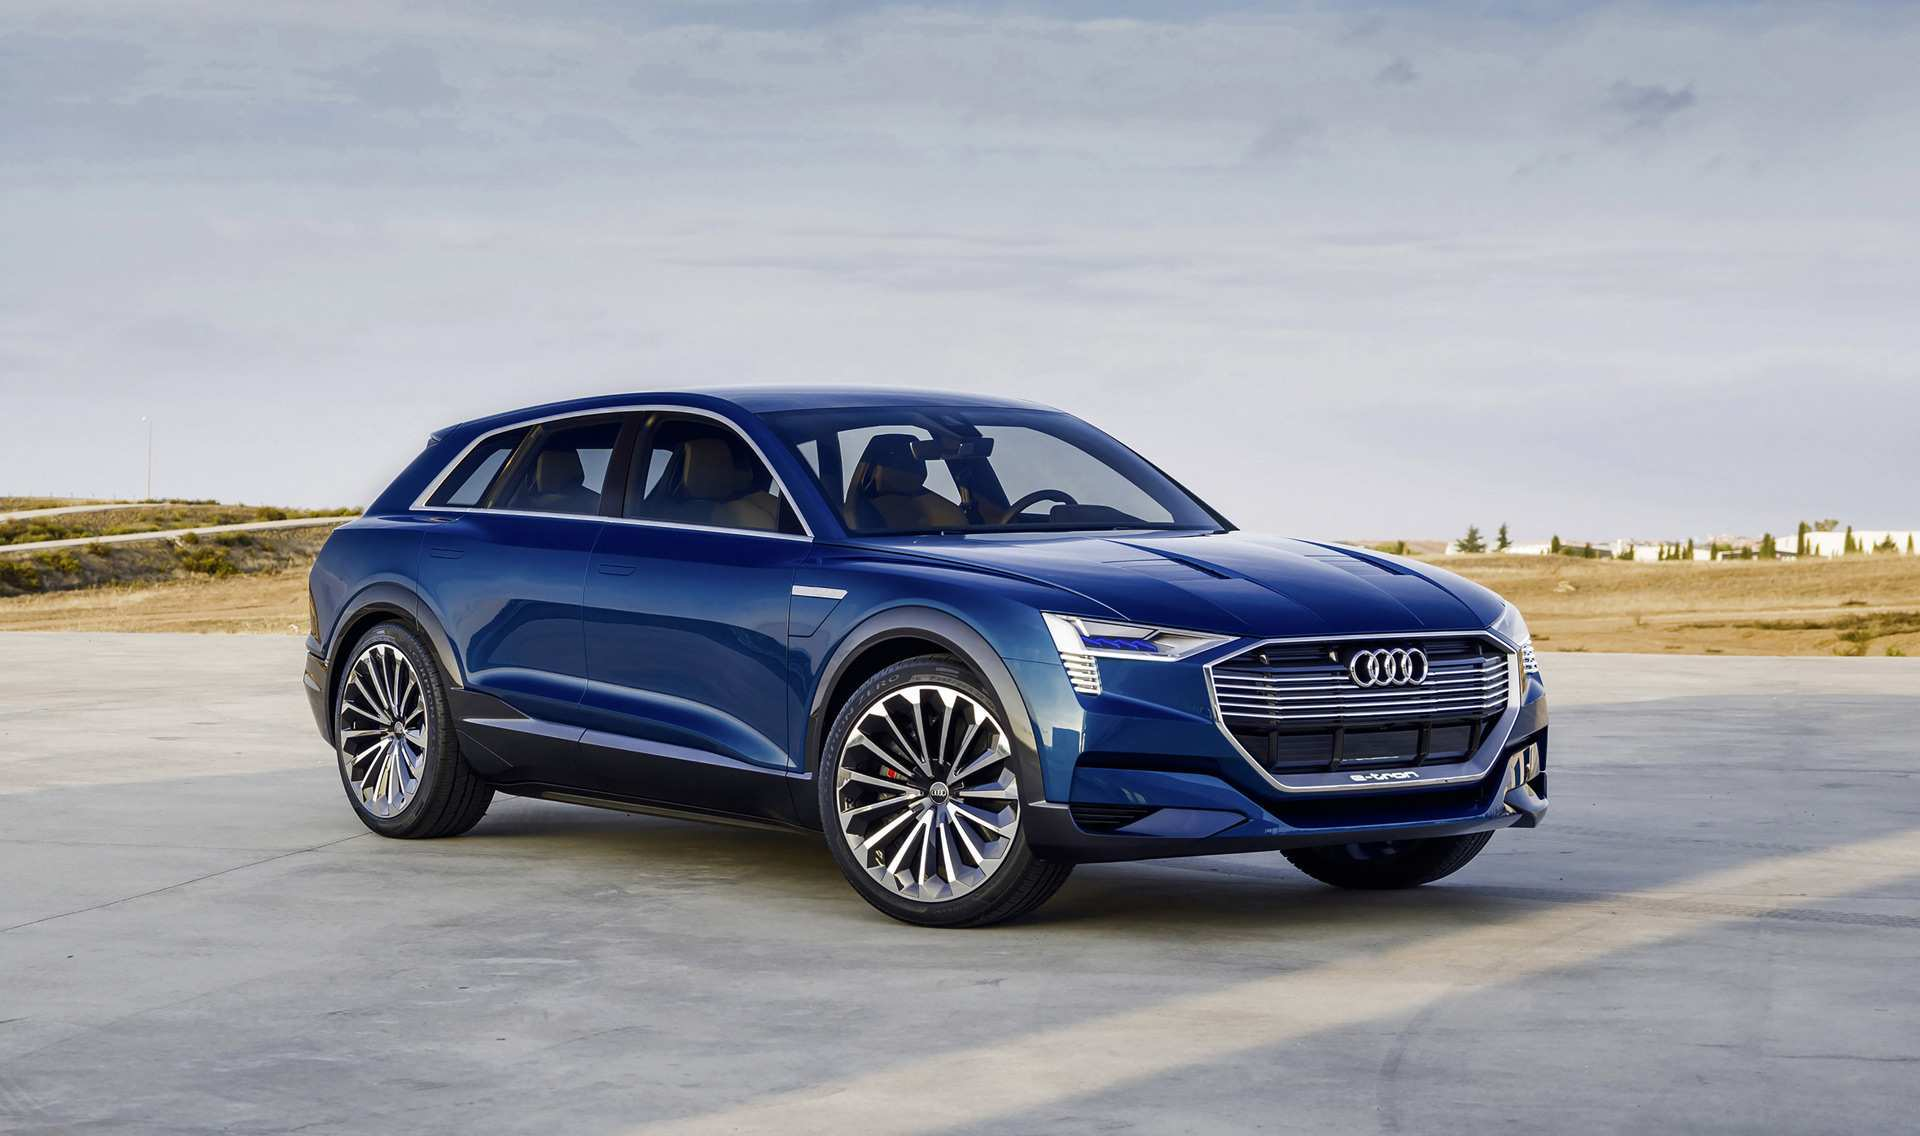 18 New Audi Electric Cars 2020 New Review with Audi Electric Cars 2020